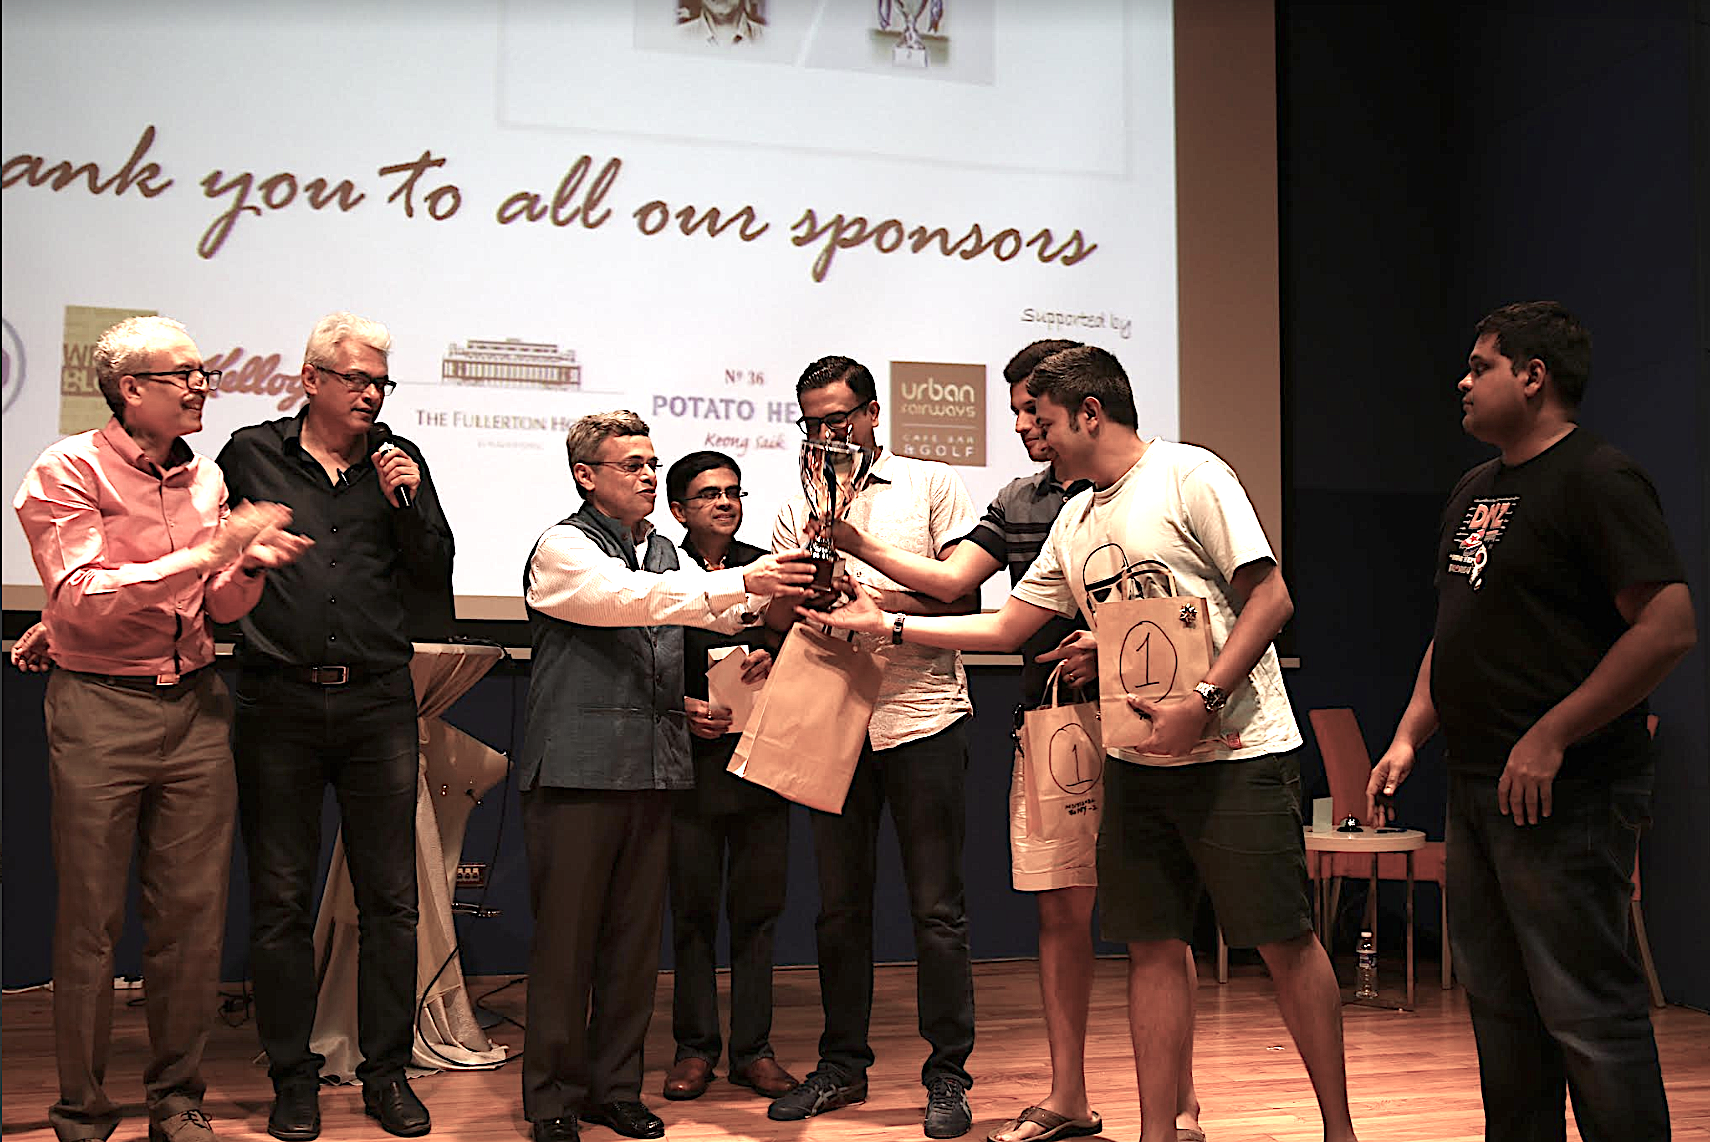 Indian High Commissioner, HE Jawed Ashraf presenting the trophy to the winning team of Mind aMaze 2017 Instant Noodles, as quizmaster Joy Bhattacharya and president of IIMPACT Saniv Aiyar (left) look on. Photo courtesy: Mind aMaze